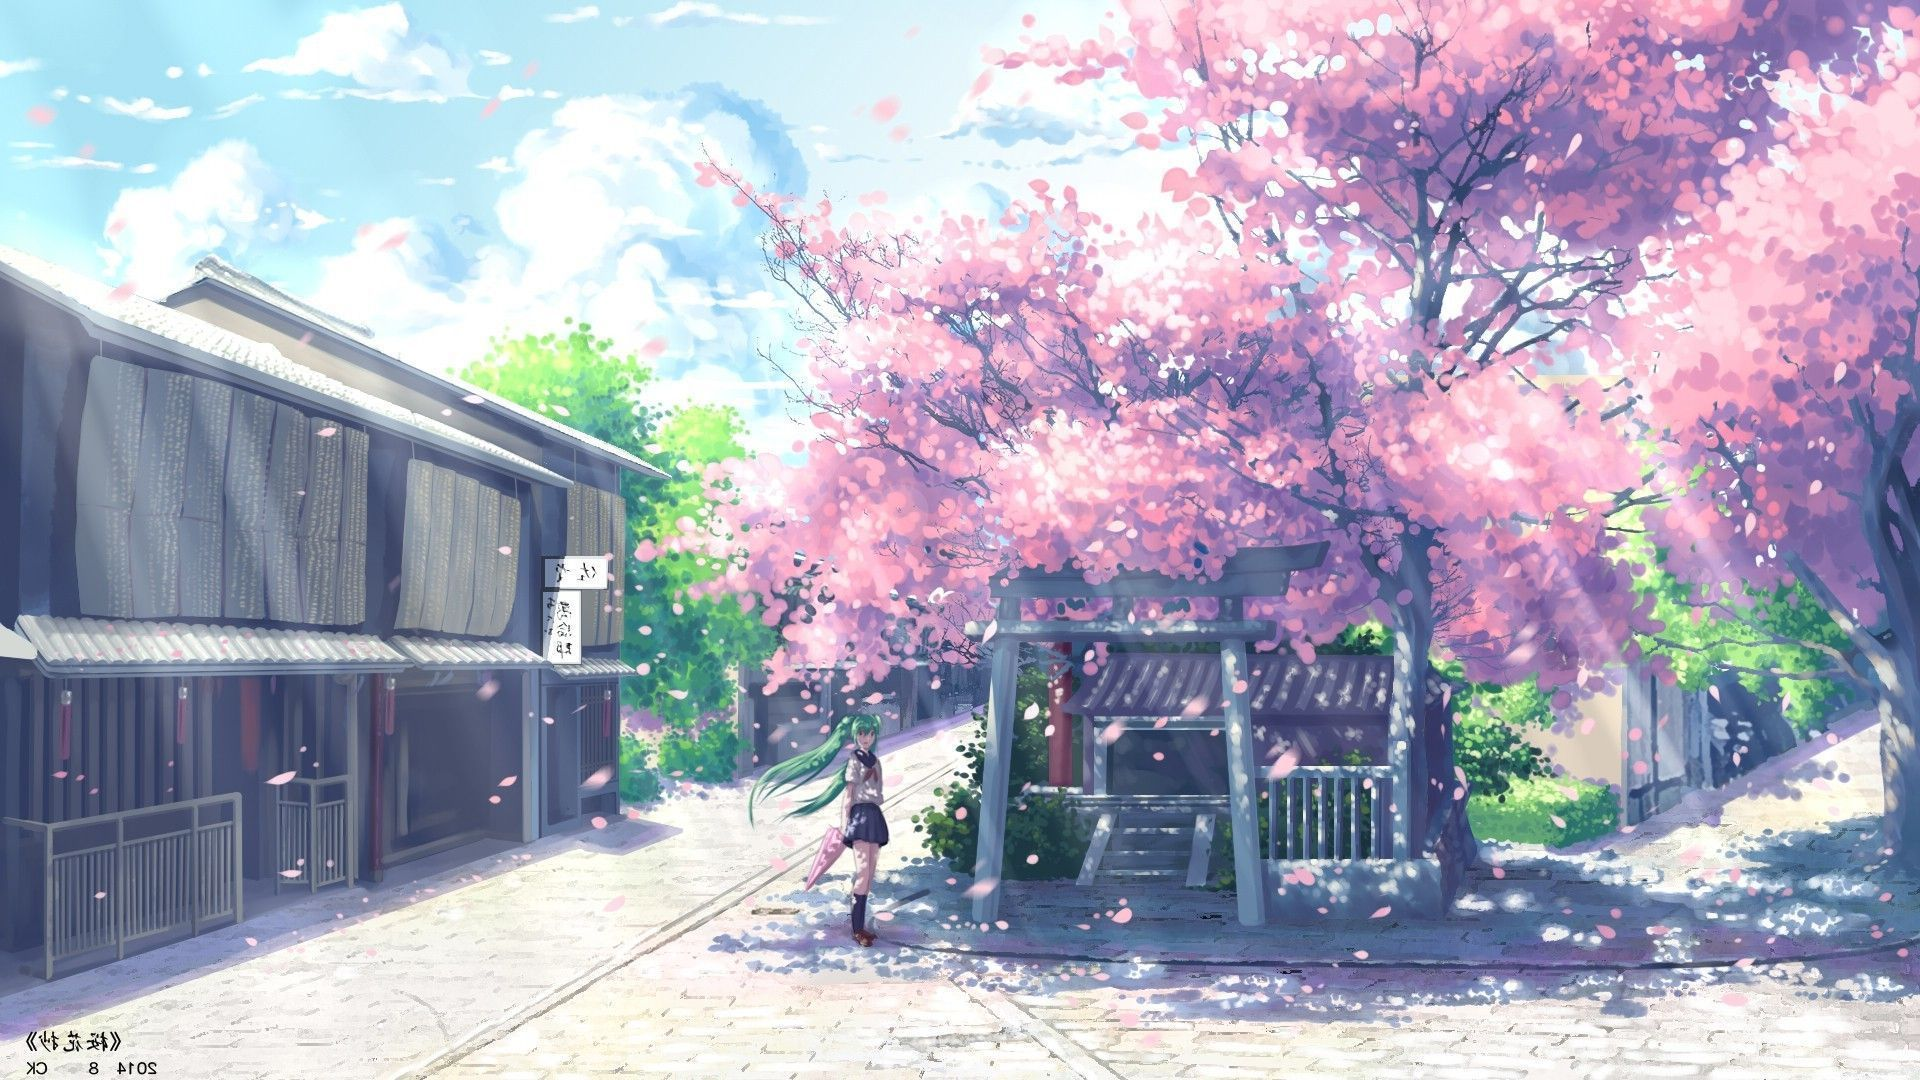 90s Anime Aesthetic Wallpapers Top Free 90s Anime Aesthetic Backgrounds Wallpaperaccess In 2020 Anime Backgrounds Wallpapers Anime Scenery Anime Cherry Blossom